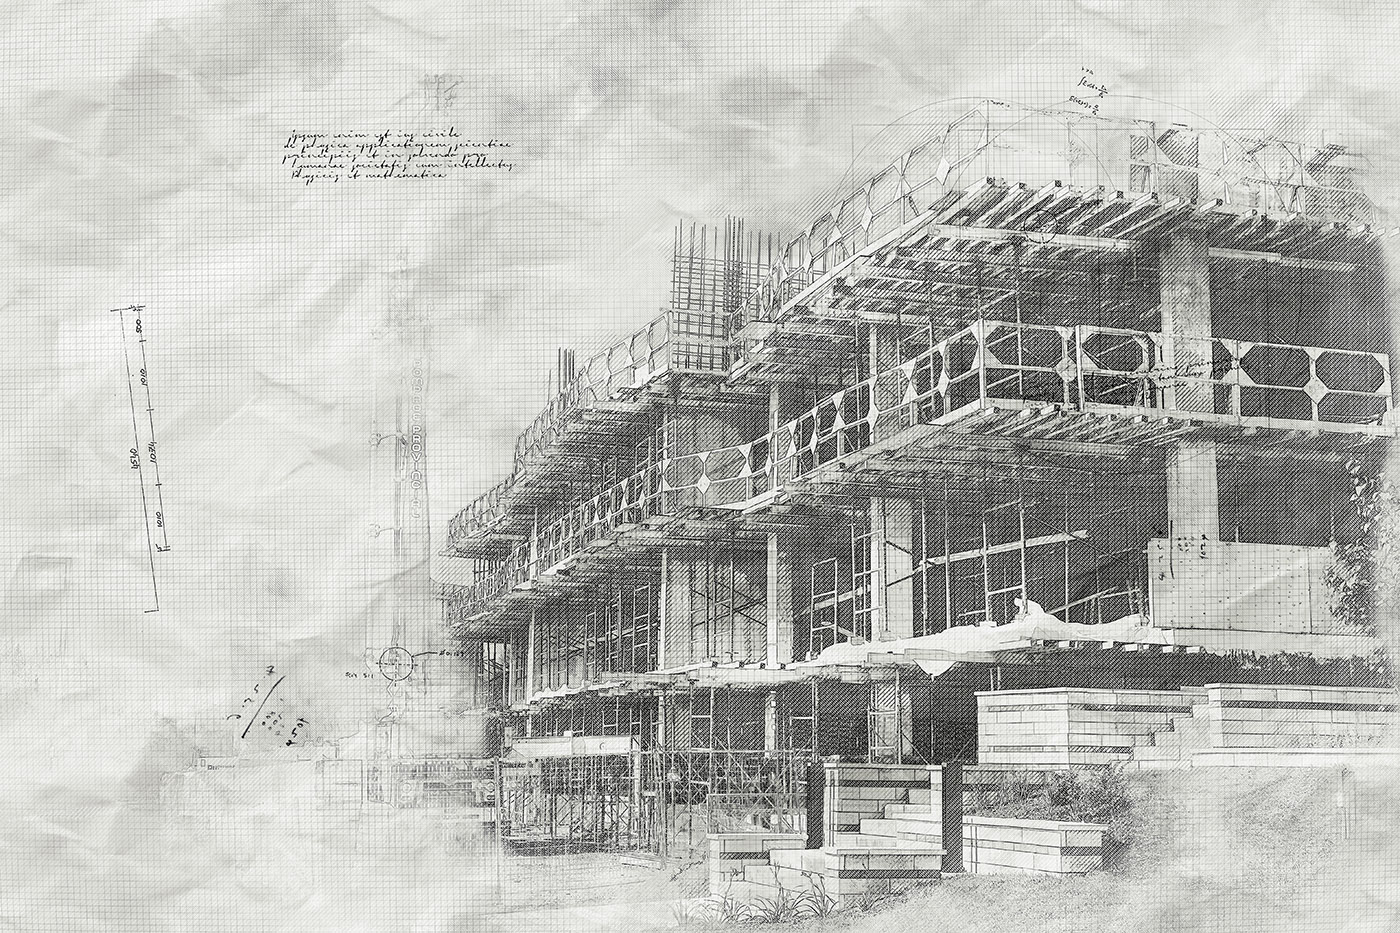 Construction Project Sketch B&W Image - Stock Photography